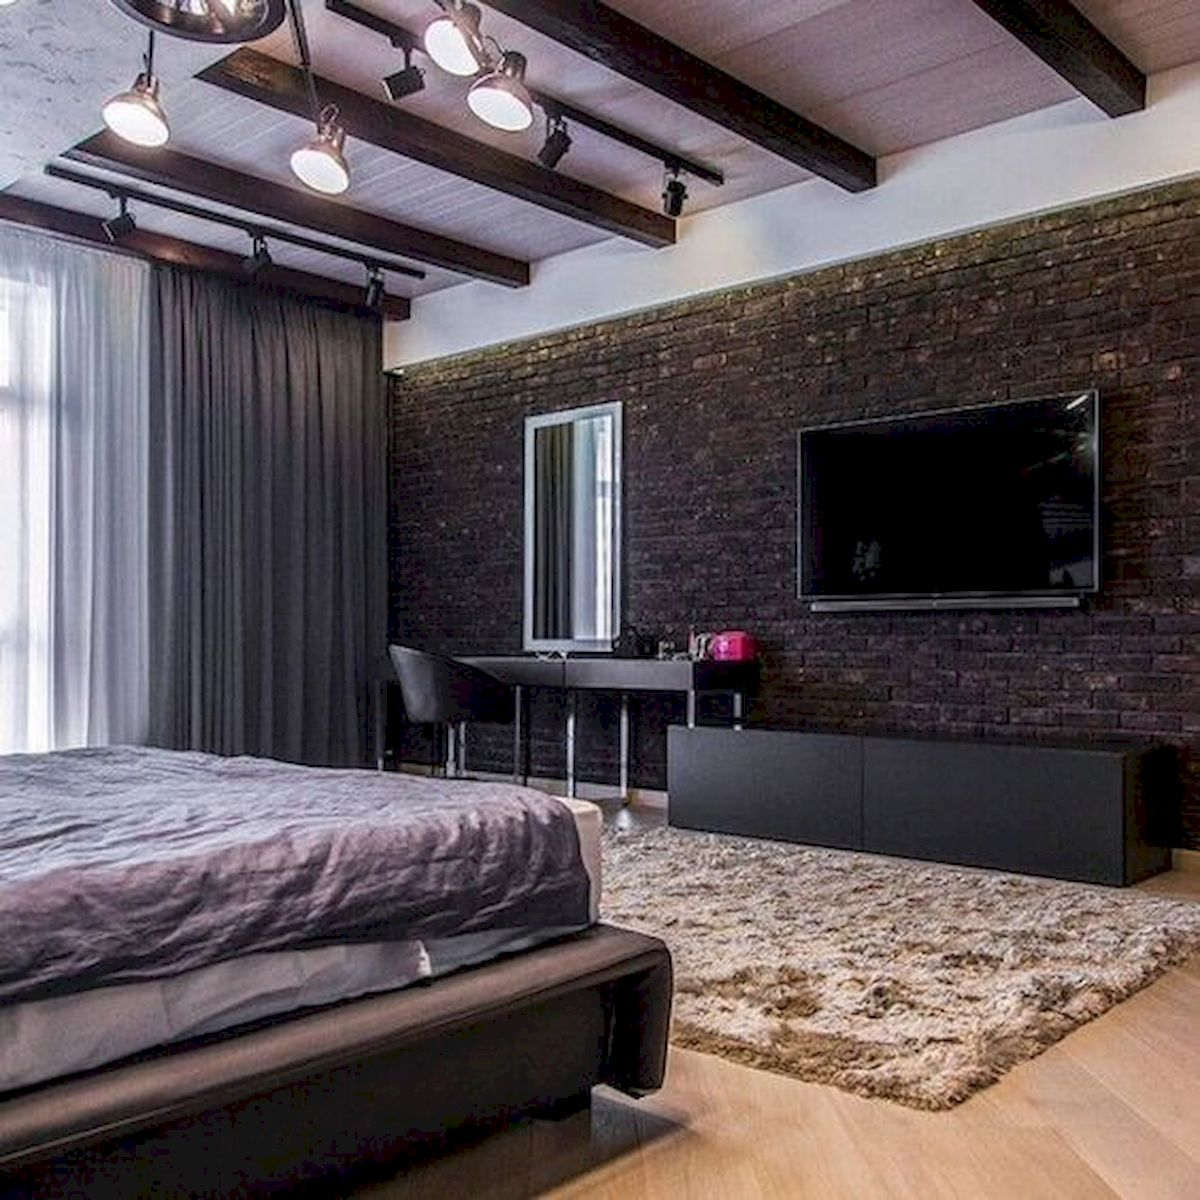 40 Incredible Modern Bedroom Design Ideas That Will Be Relax Place (37)